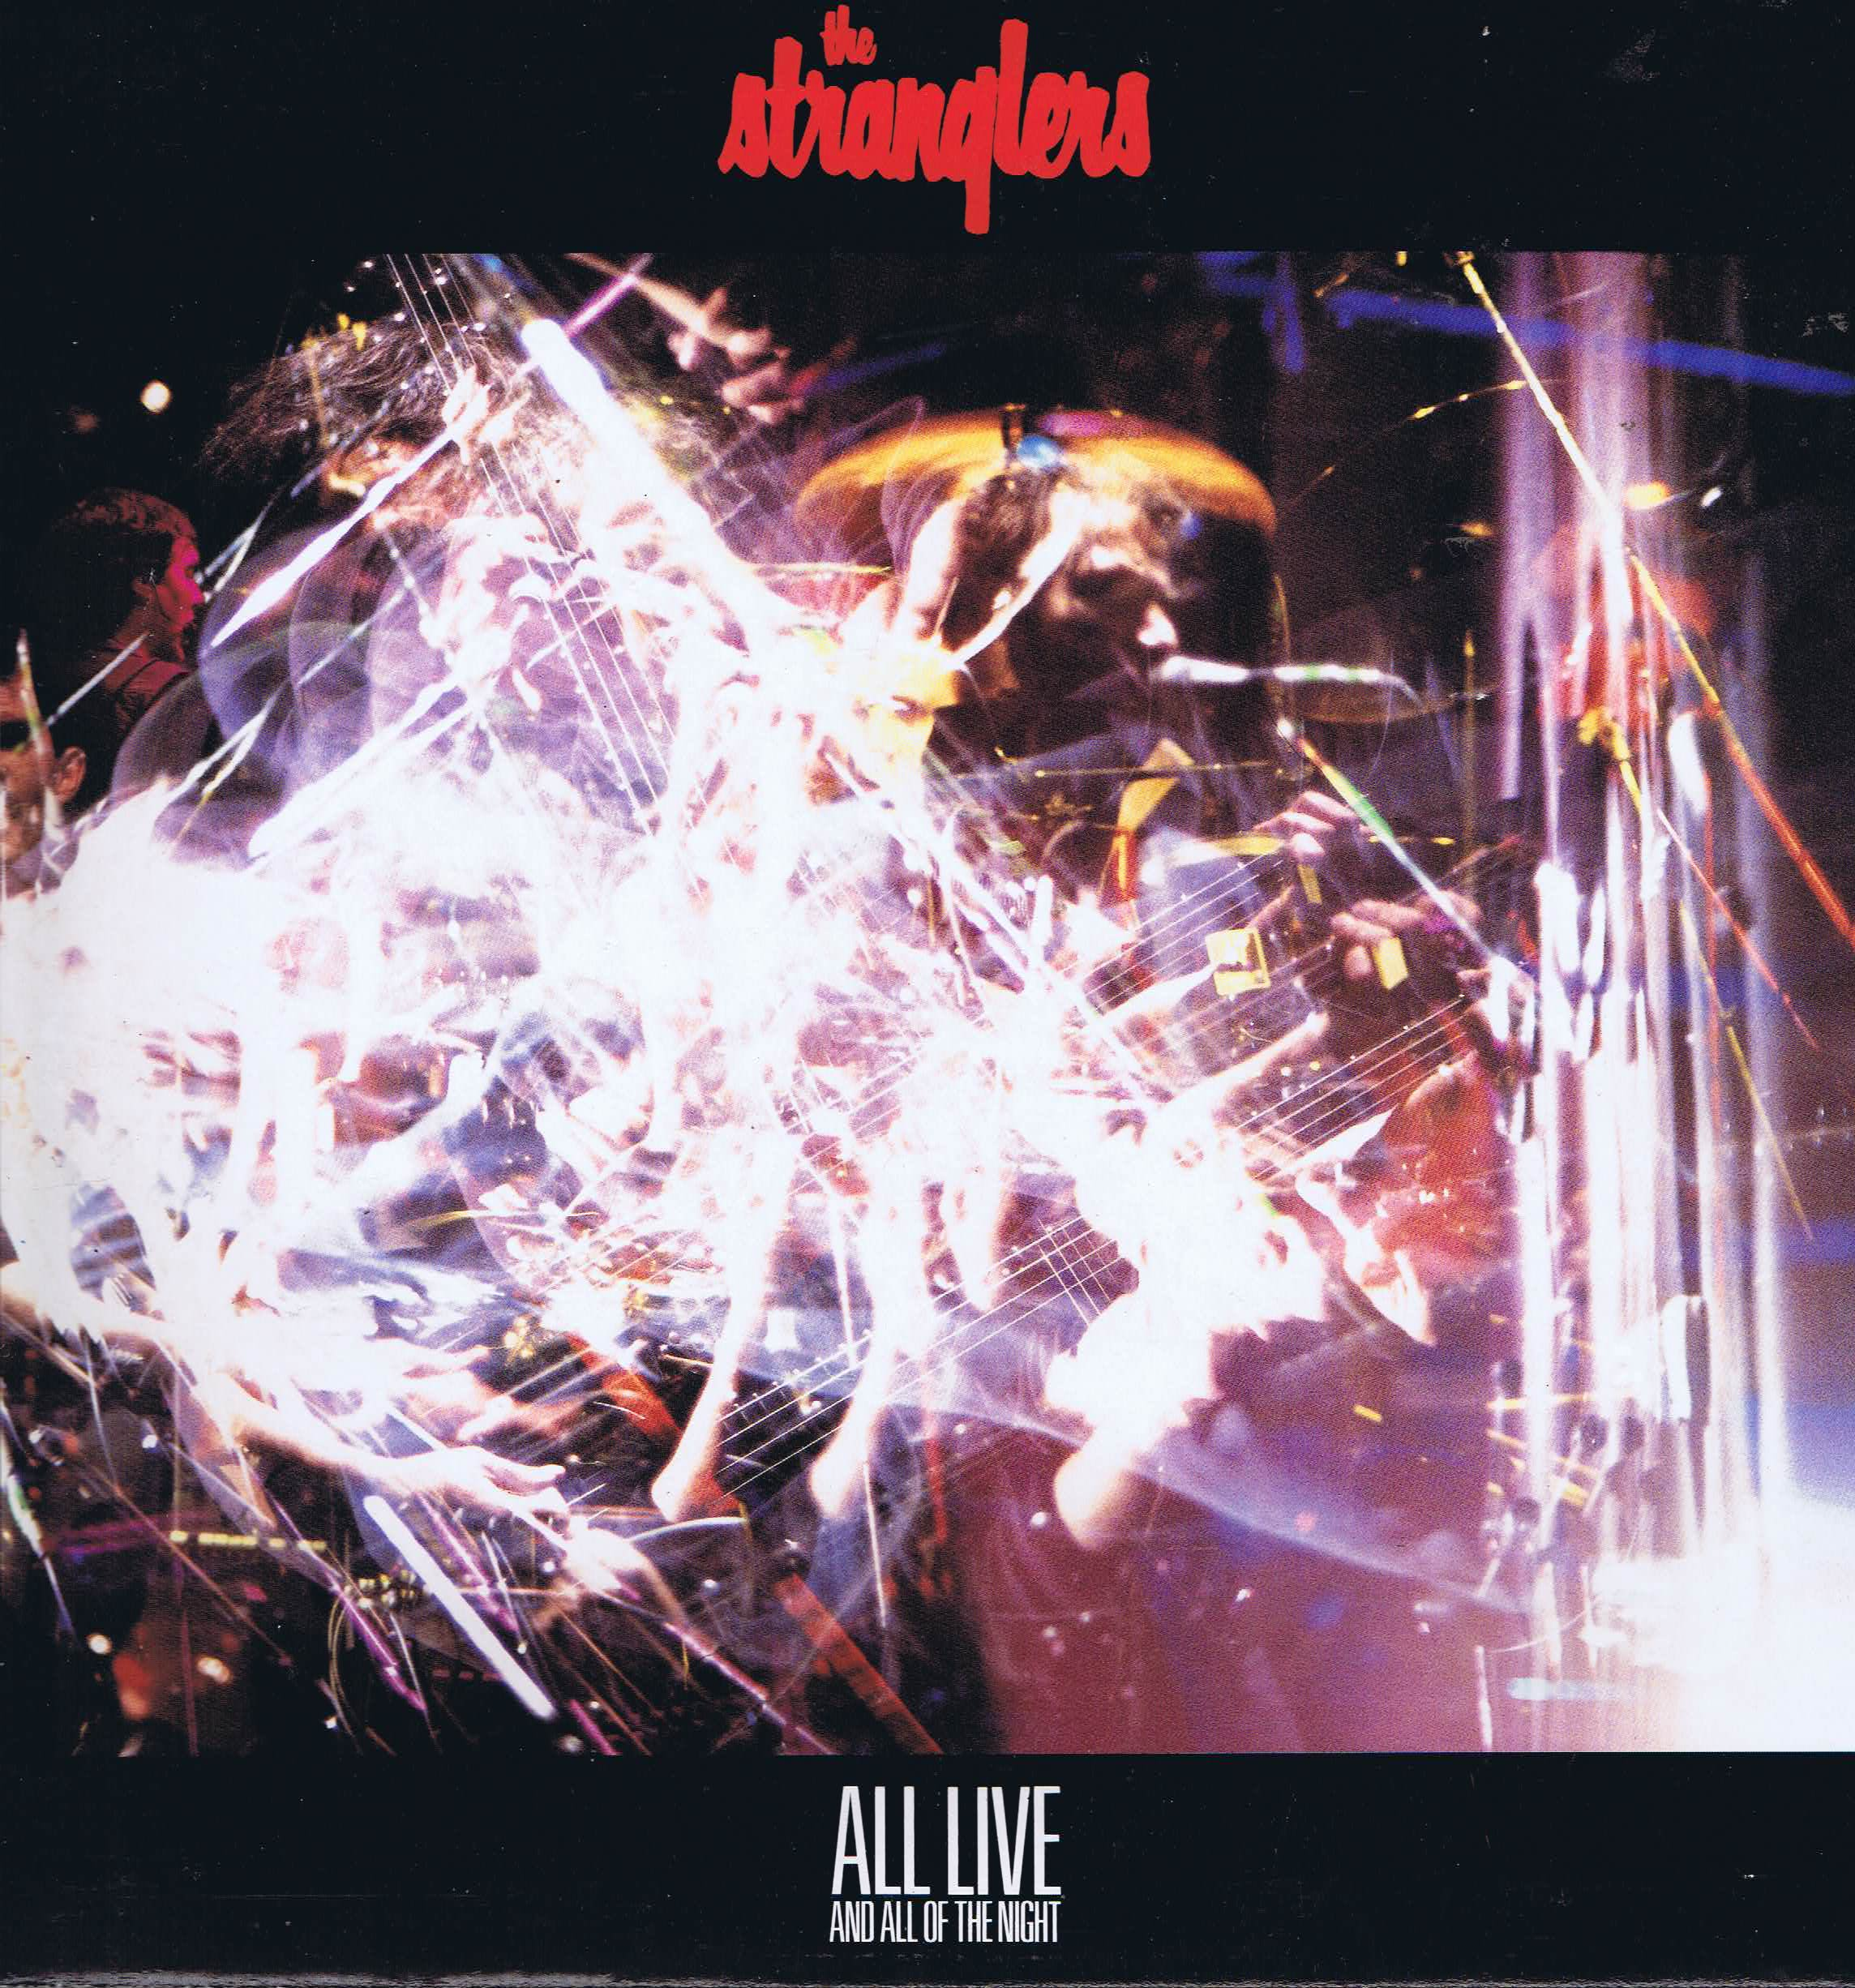 Picture of 460259 4 All live and all of the night by artist The Stranglers